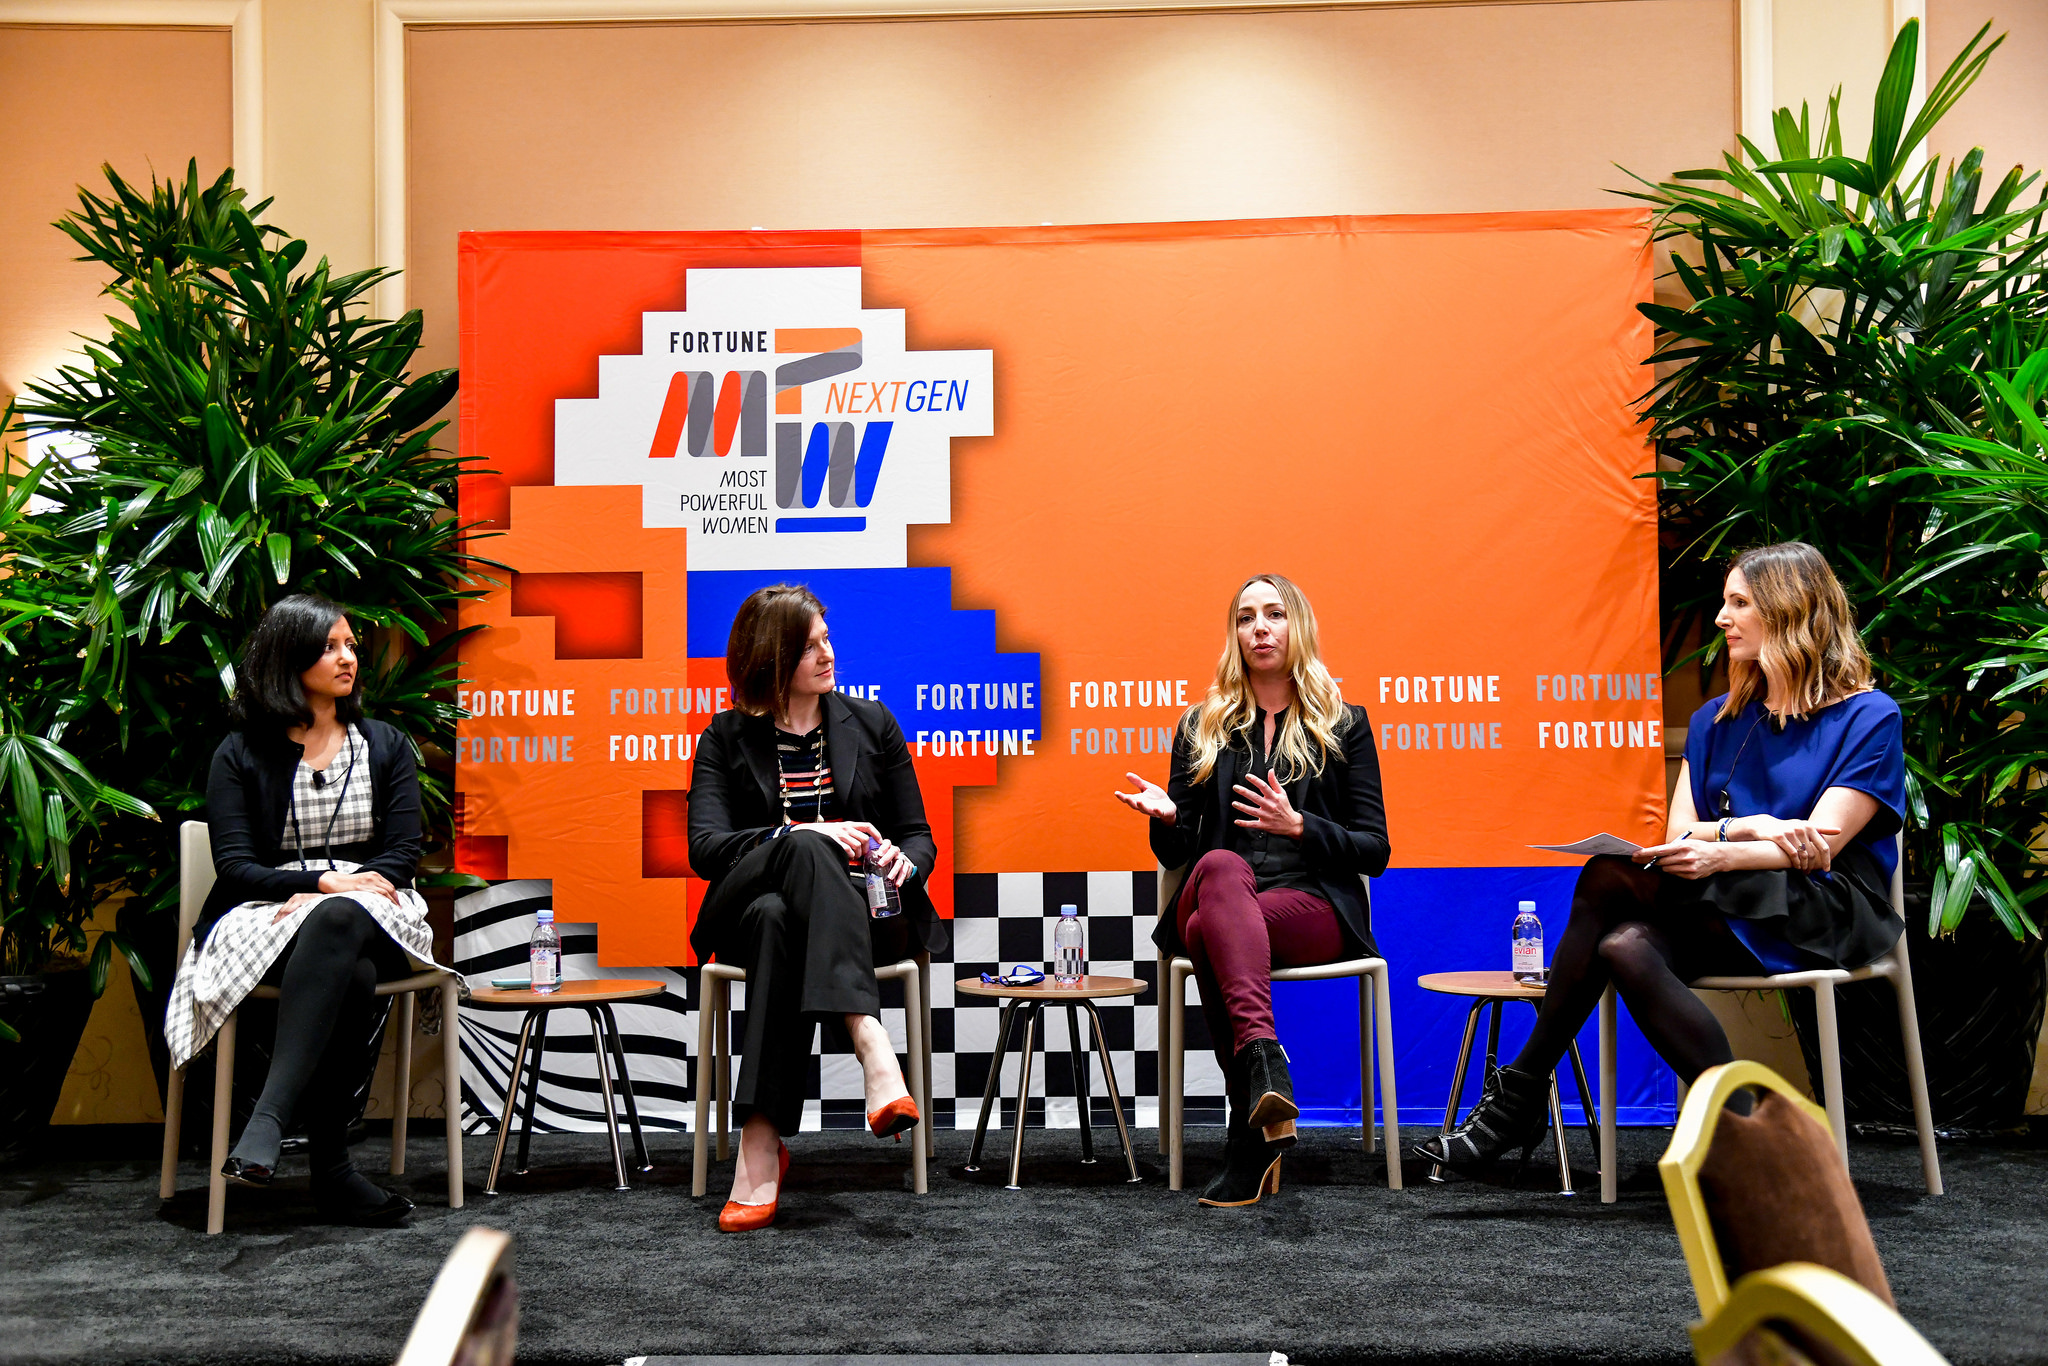 Jackie Birdsall of Toyota, Surabhi Gupta or Airbnb, Julia Steyn of General Motors, and Leigh Gallagher of Fortune at the 2017 Fortune Most Powerful Women Next Gen Summit in Laguna Niguel, Calif.